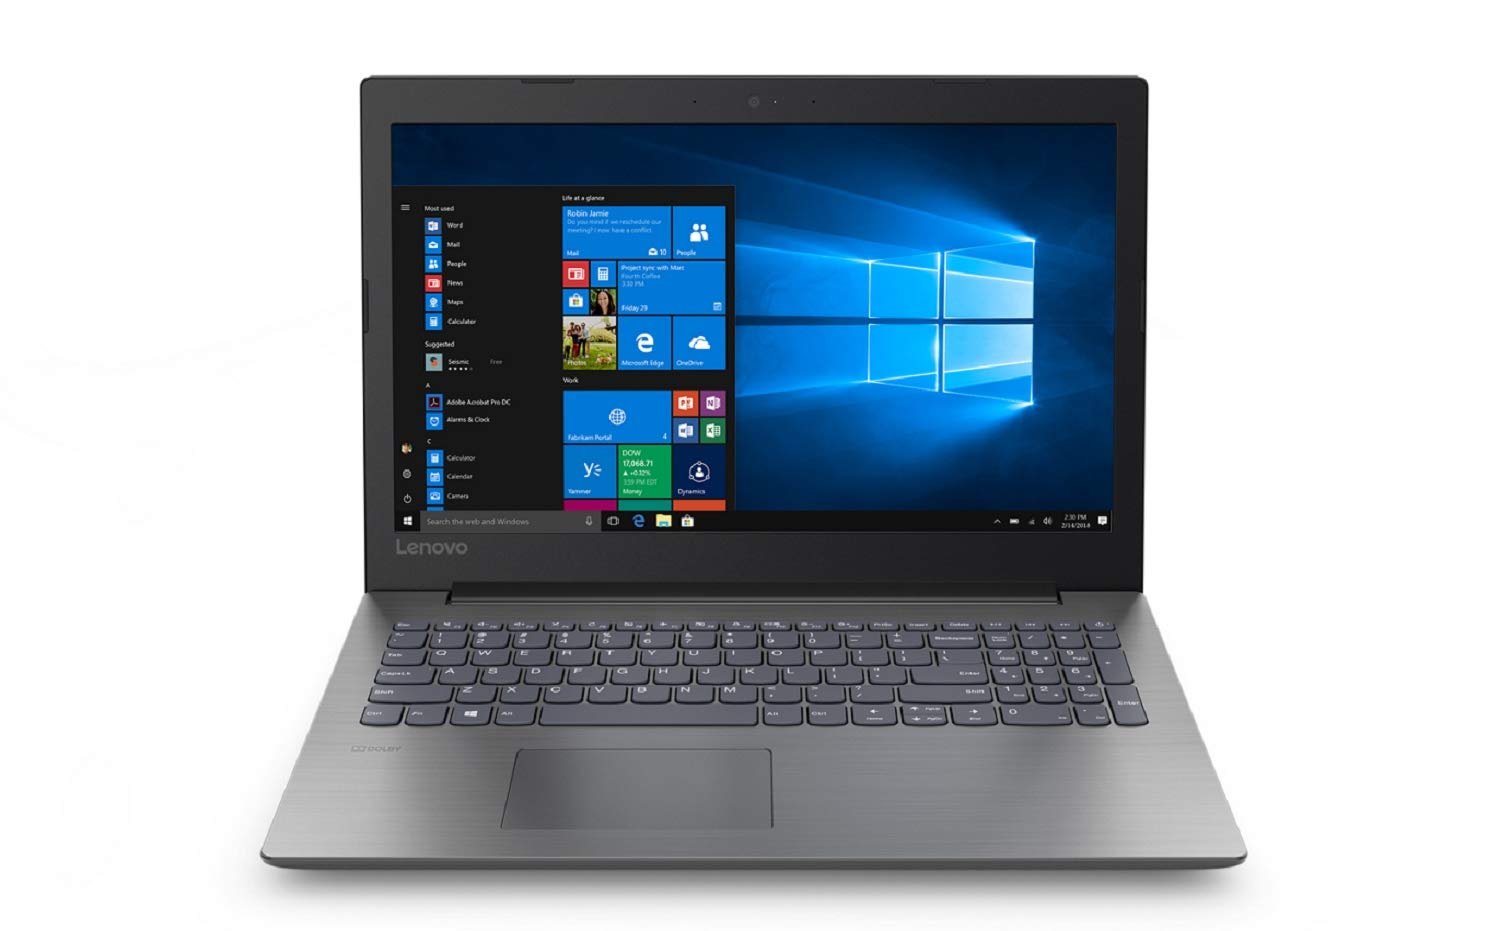 新着商品 Lenovo 256GB Ideapad High Performance 15.6 inch Home inch Black and Business Laptop (Intel Celeron N4000 Processor, 16GB RAM, 480GB SSD, 15.6